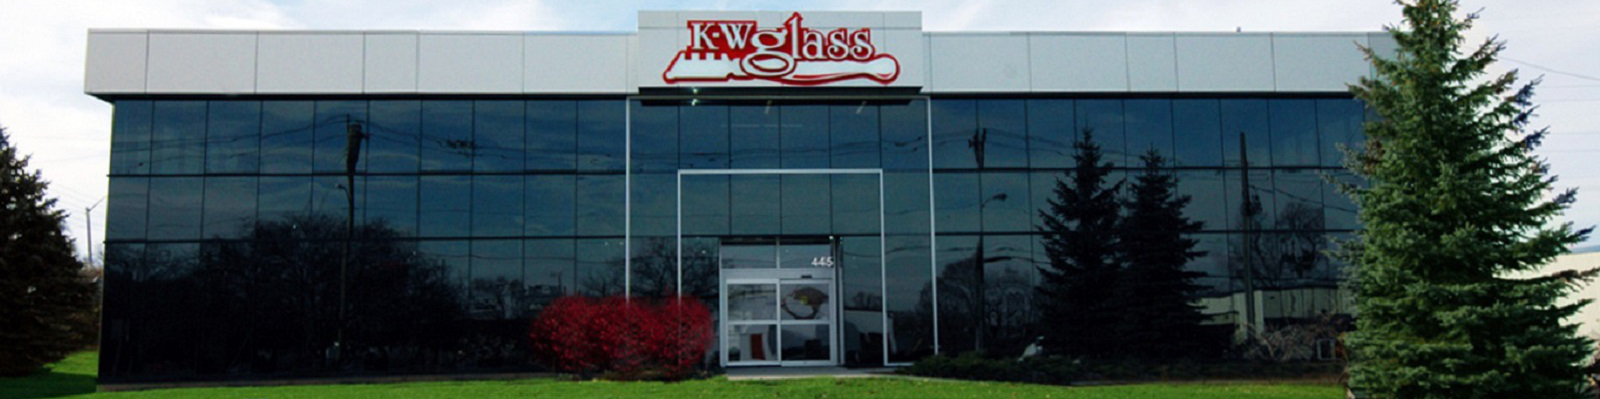 K-W Glass, Waterloo Showroom